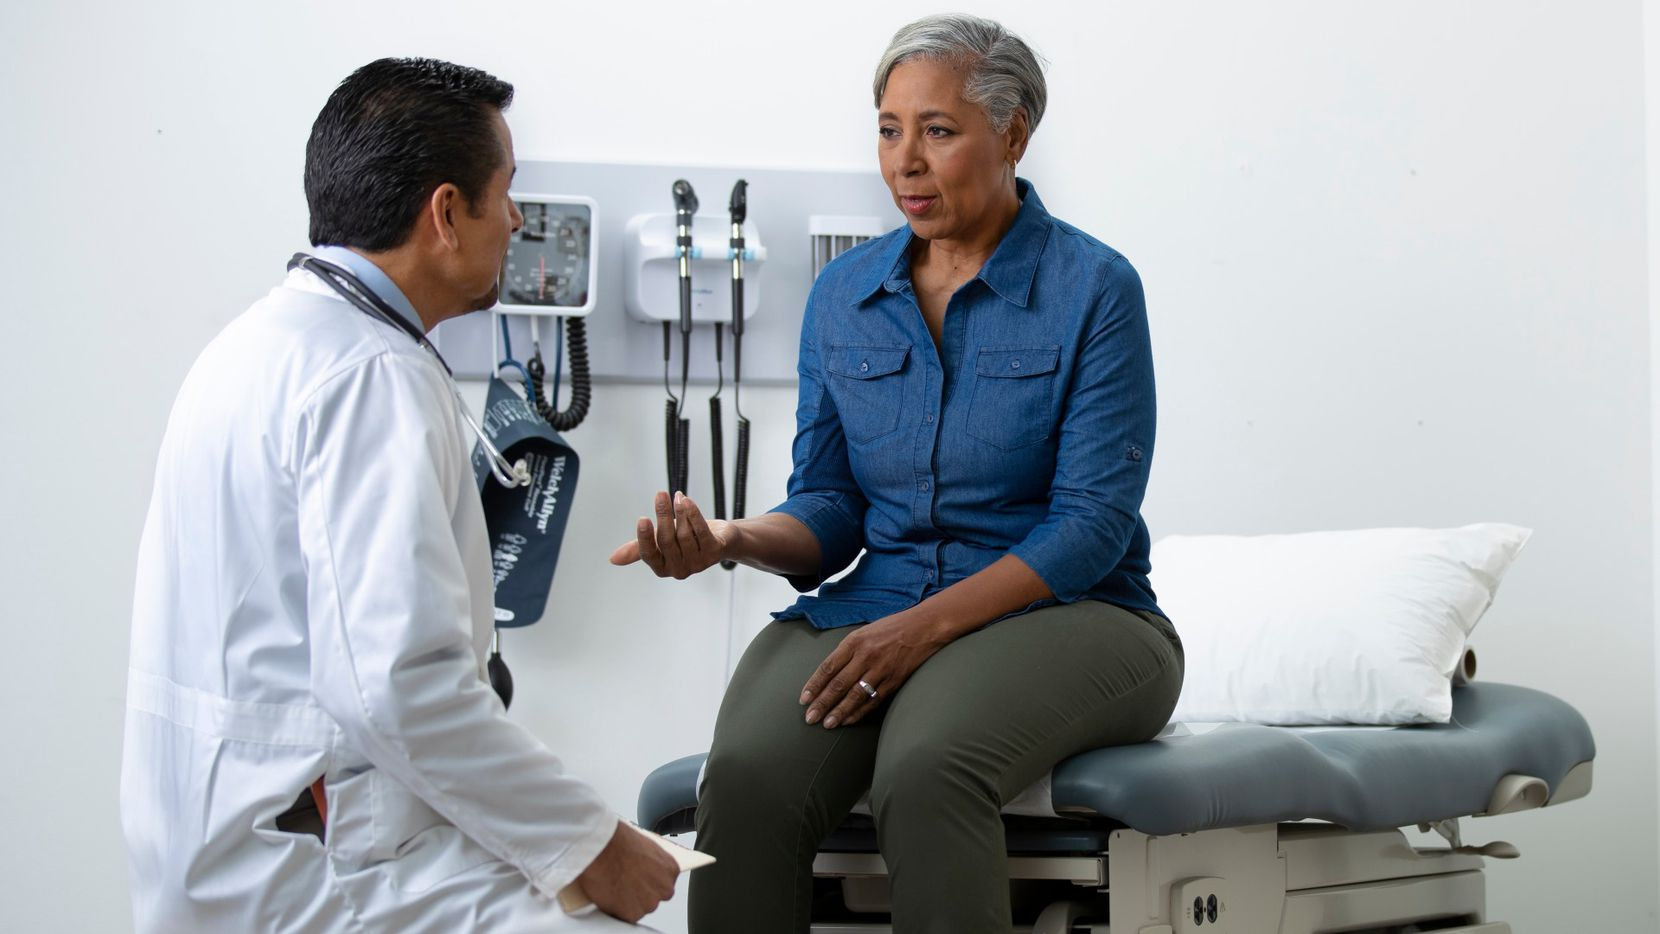 African Americans have the highest death rate and shortest survival of any racial/ethnic group in the U.S. for most cancers. The American Cancer Society is working to close this health equity gap.